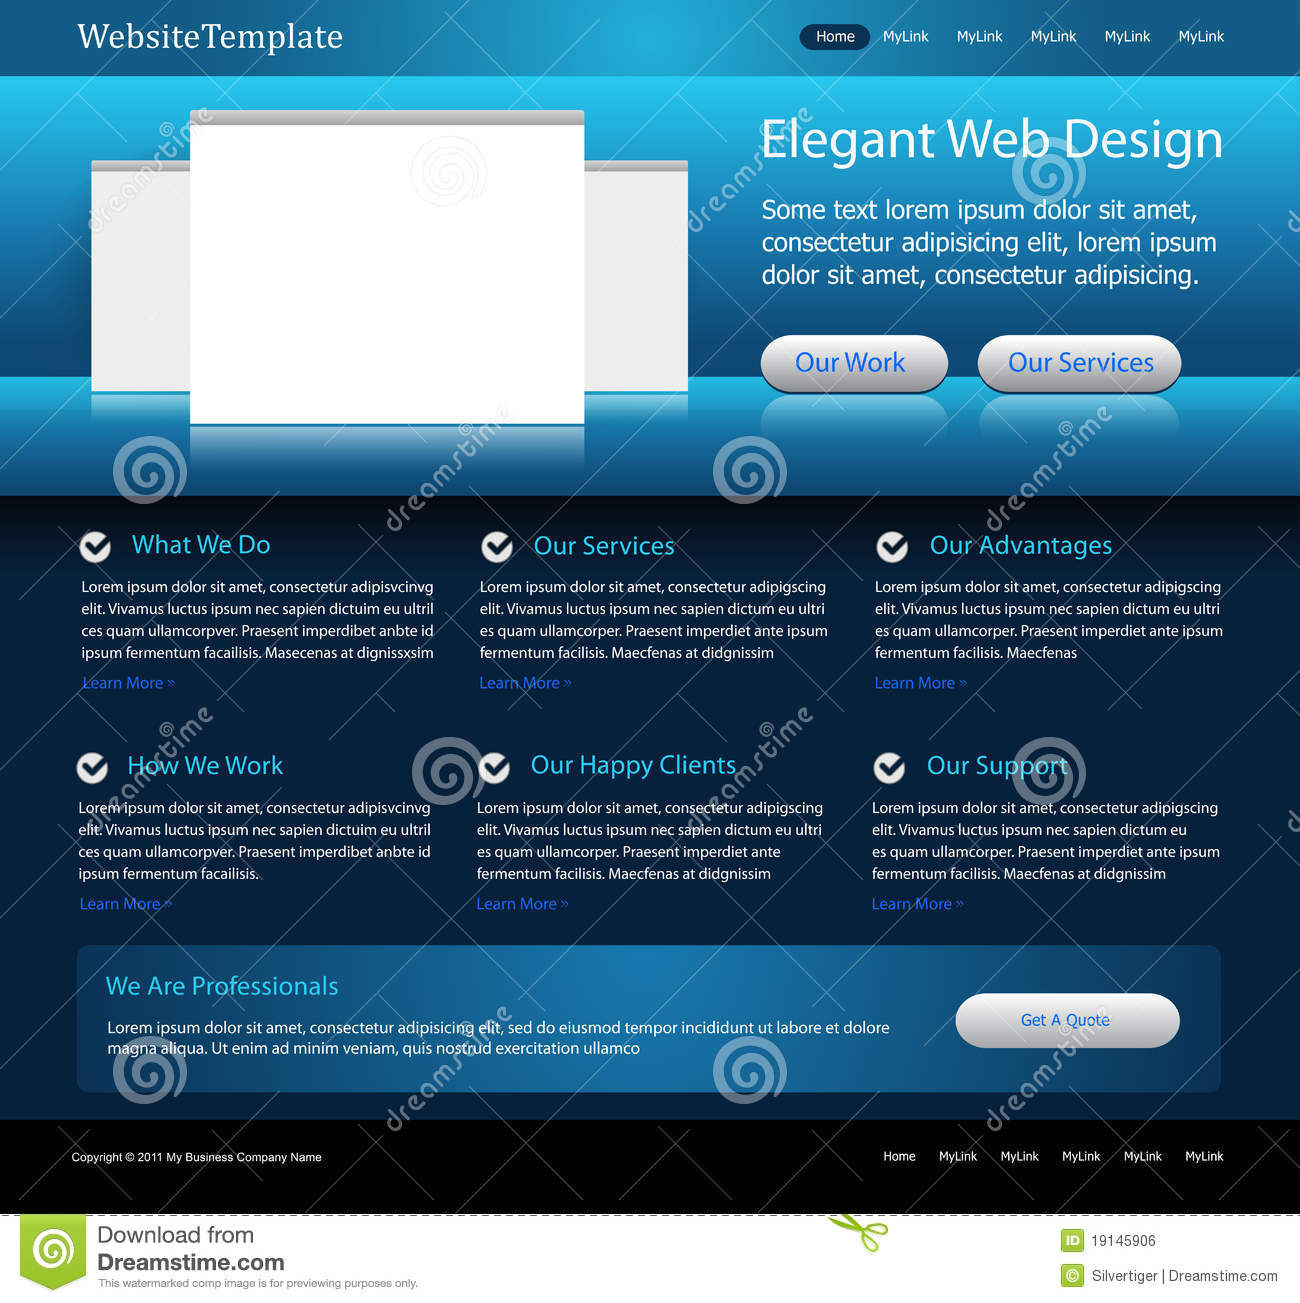 Dark Blue Website Design Template Royalty Free Stock Image - Image ...